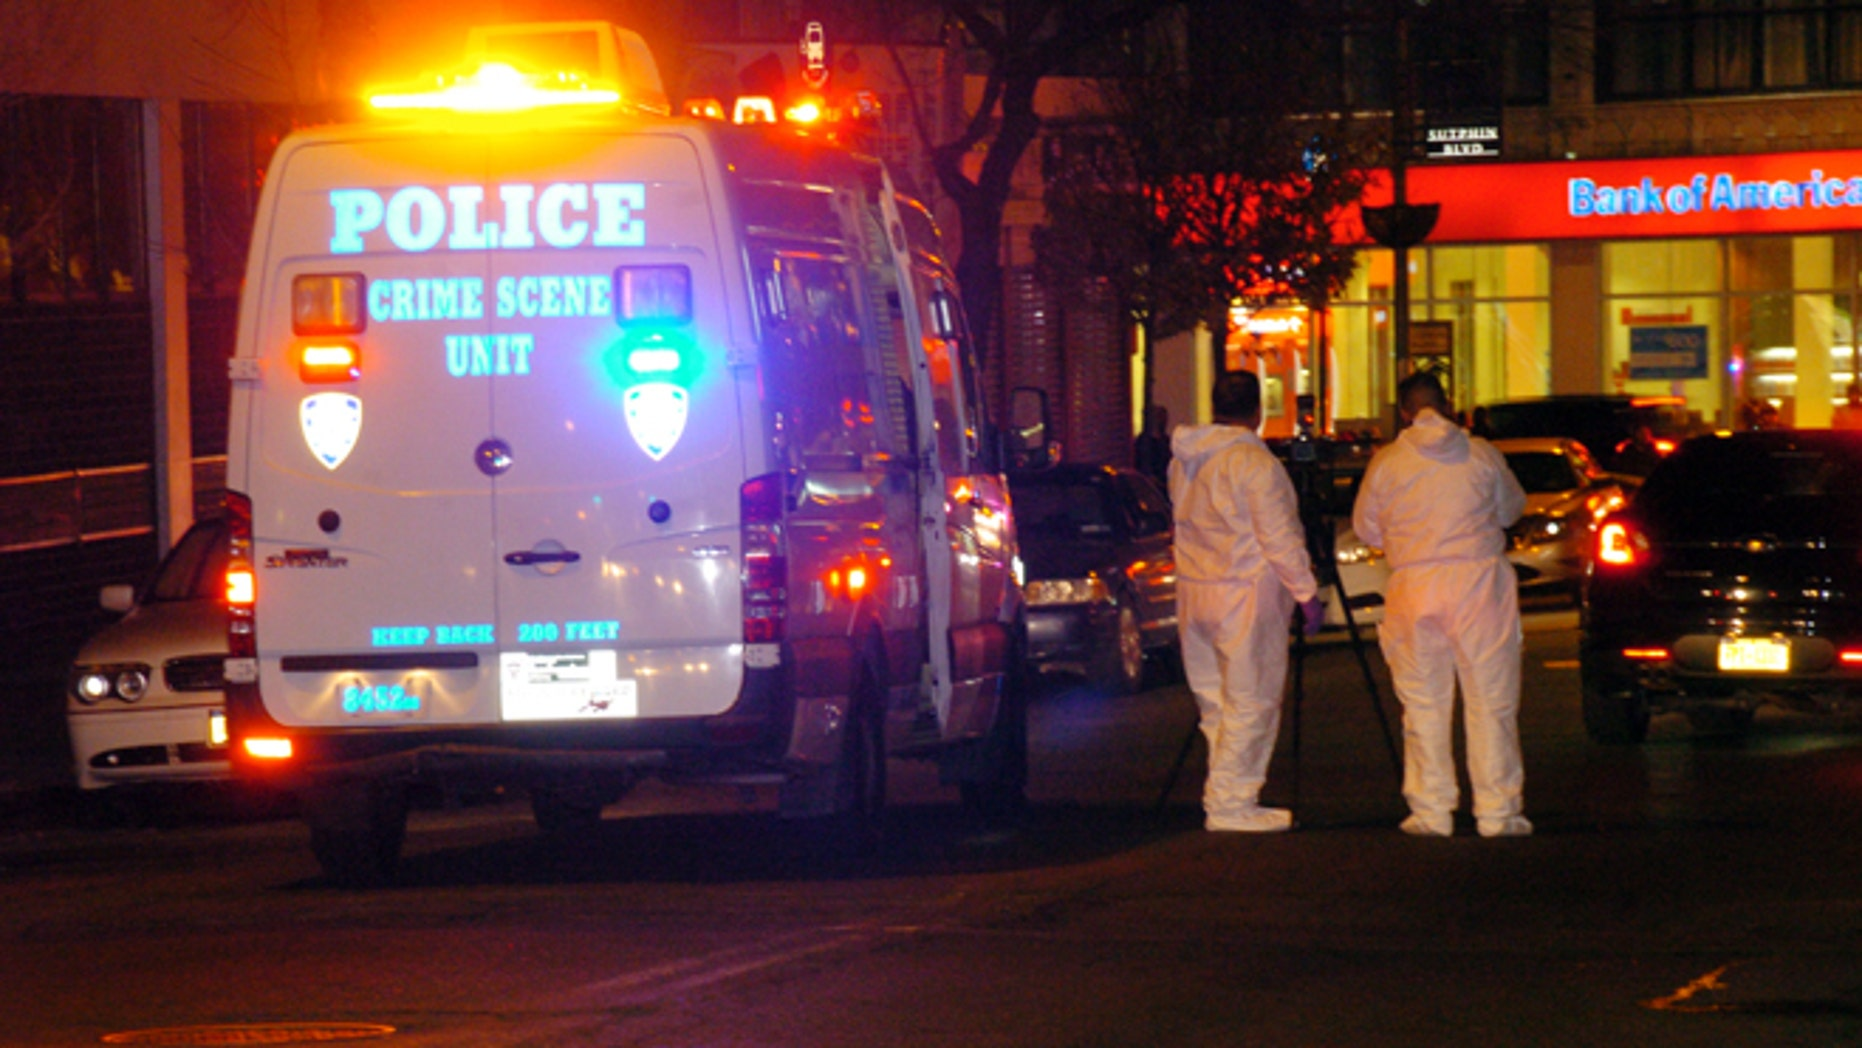 The bodies of a 1-year-old child, a 3-year-old child and a 21-year-old female were found in a Queens, N.Y., apartment on Sunday Jan. 19, 2013.